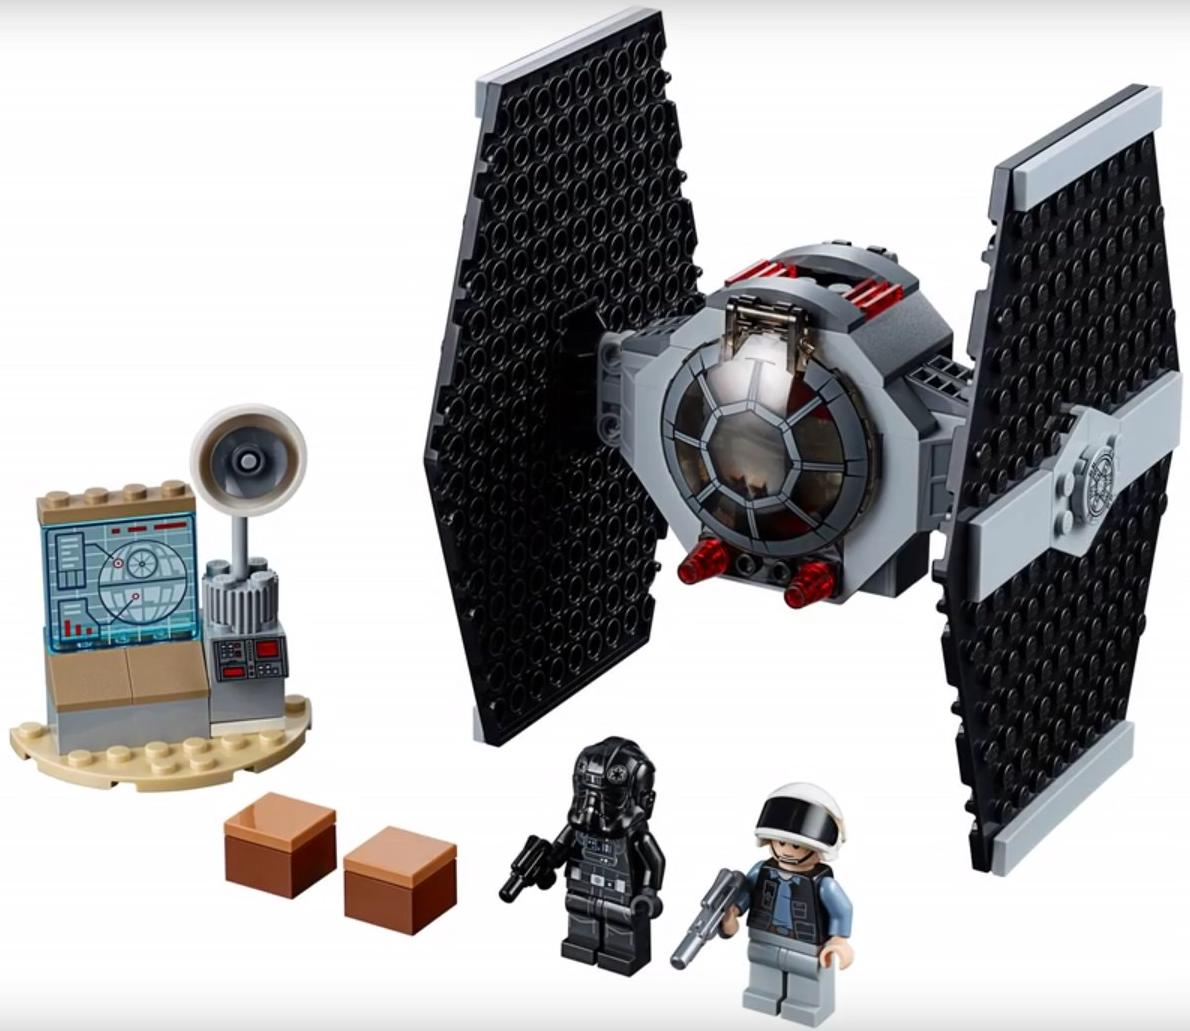 LEGO 75237 TIE Fighter Attack Set Contents